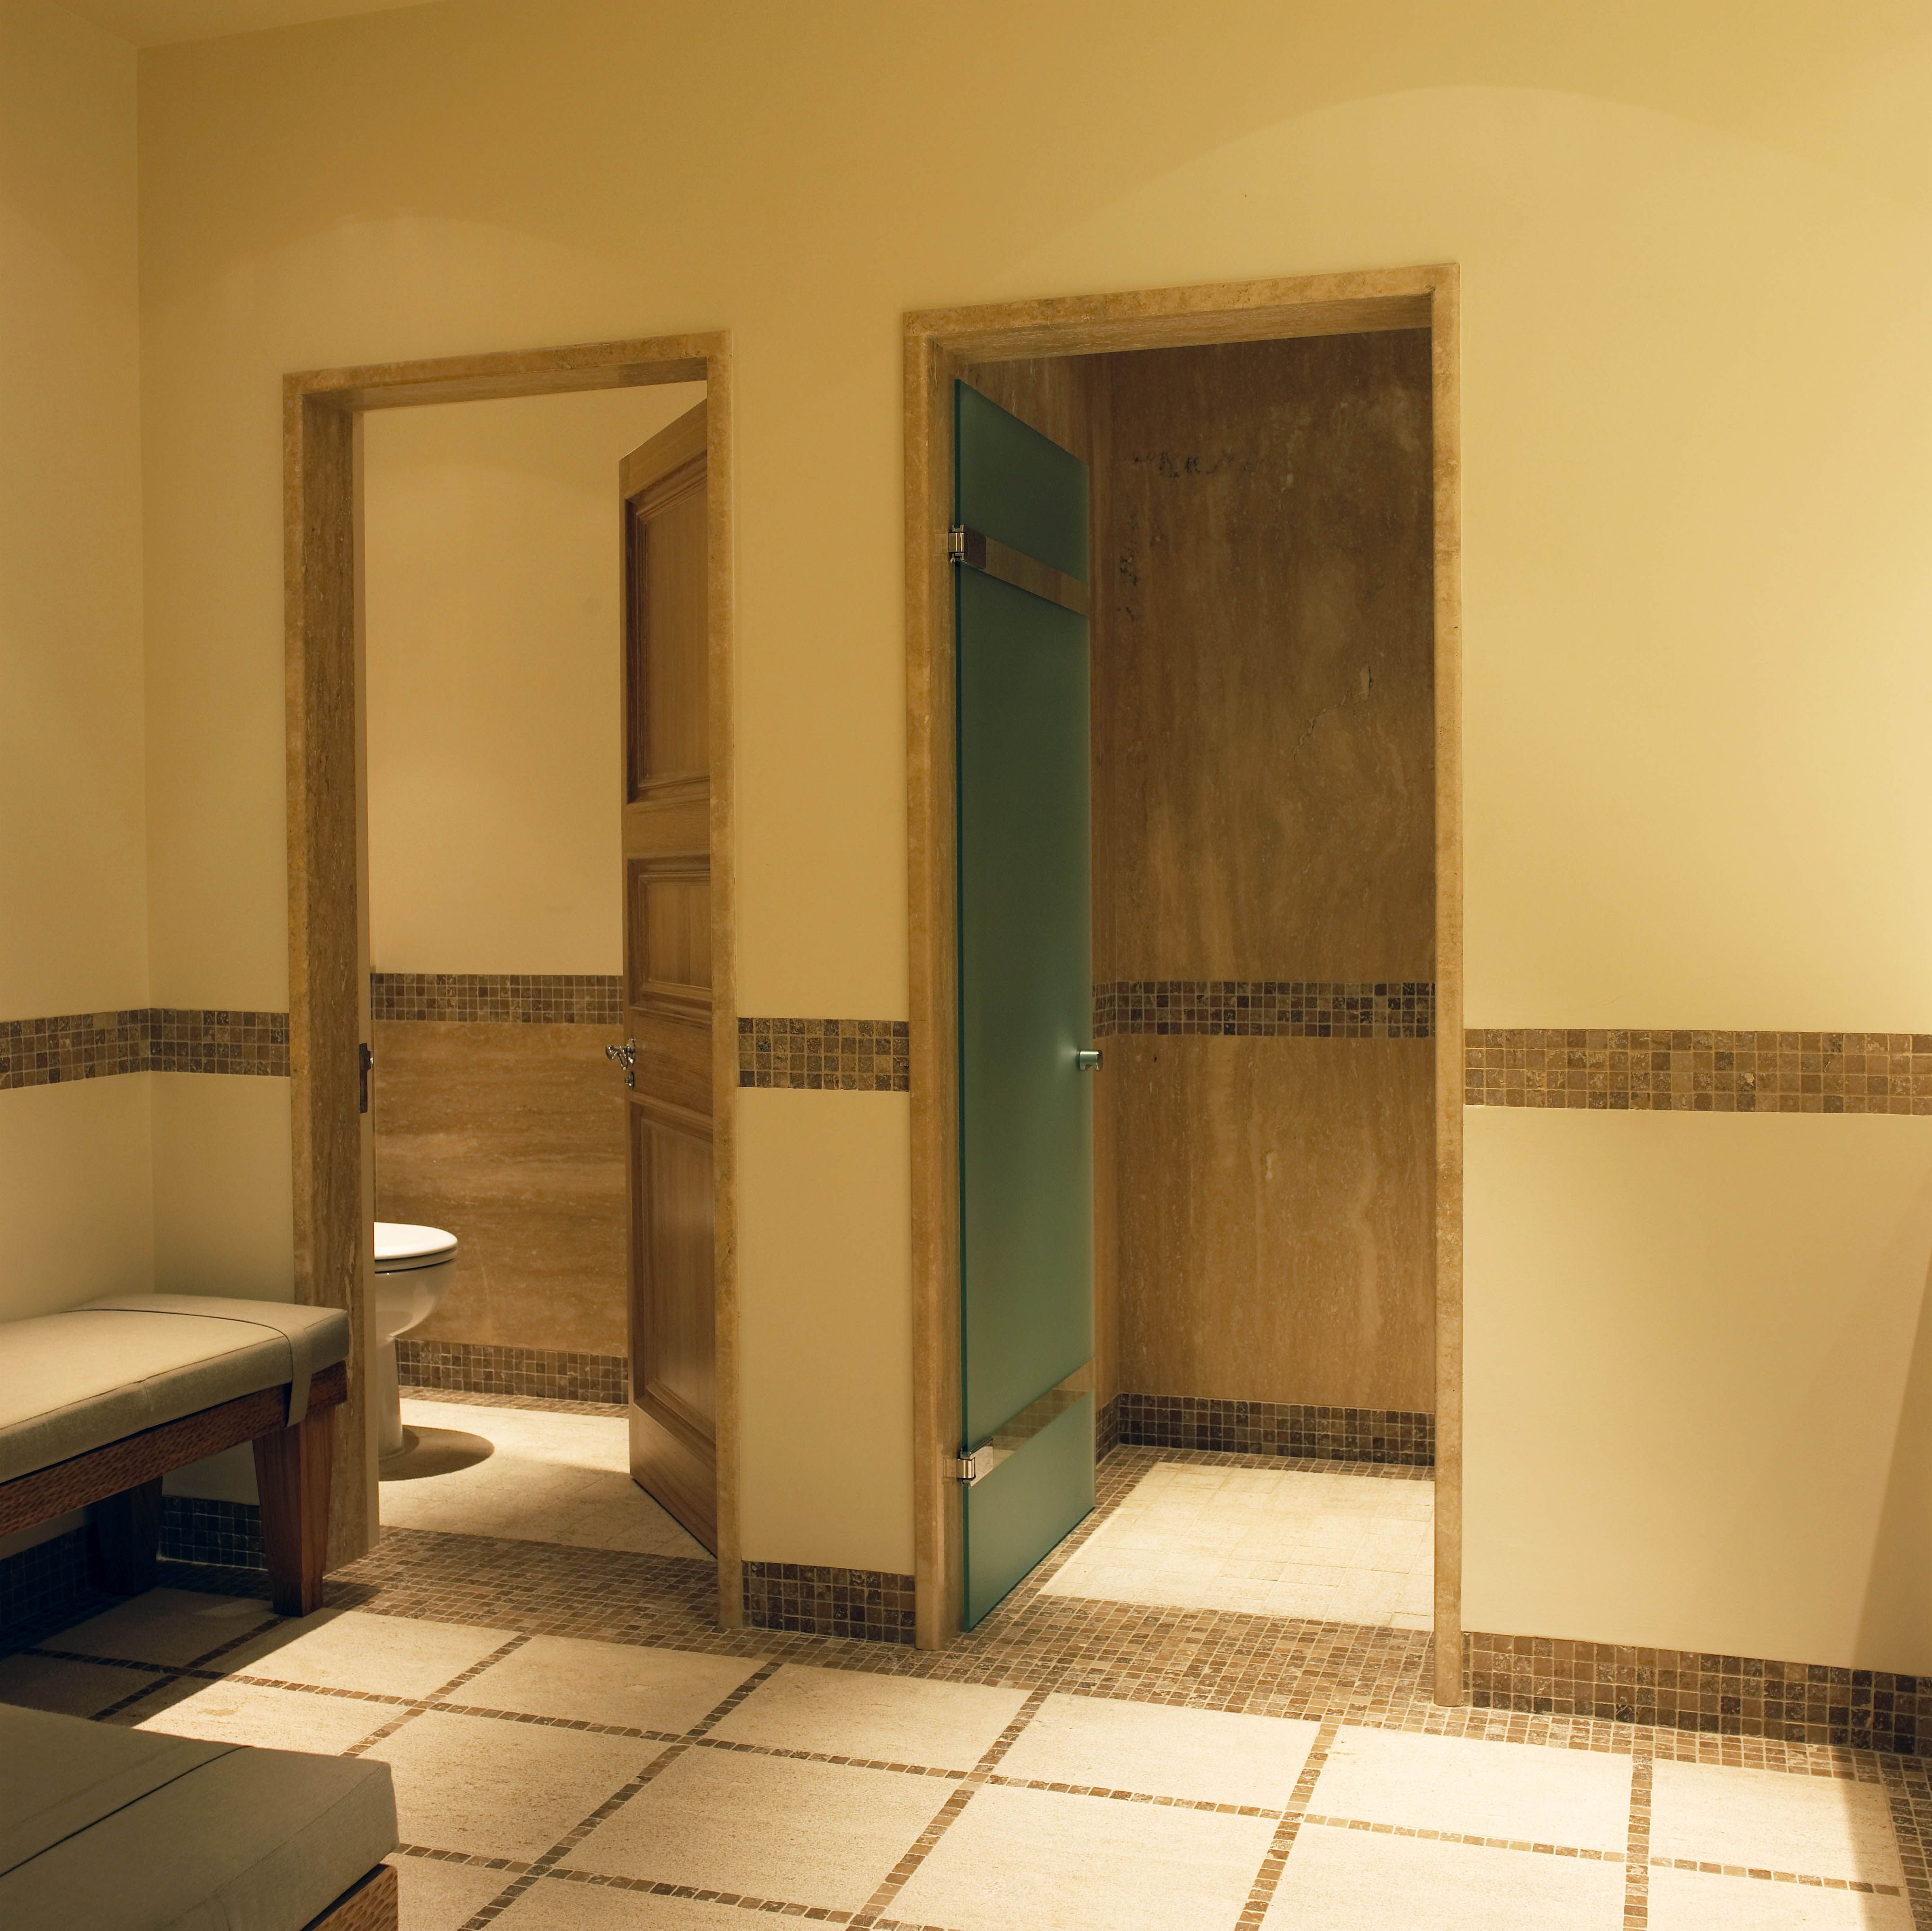 Swimming Pool Changing Rooms Marble And Wooden Details